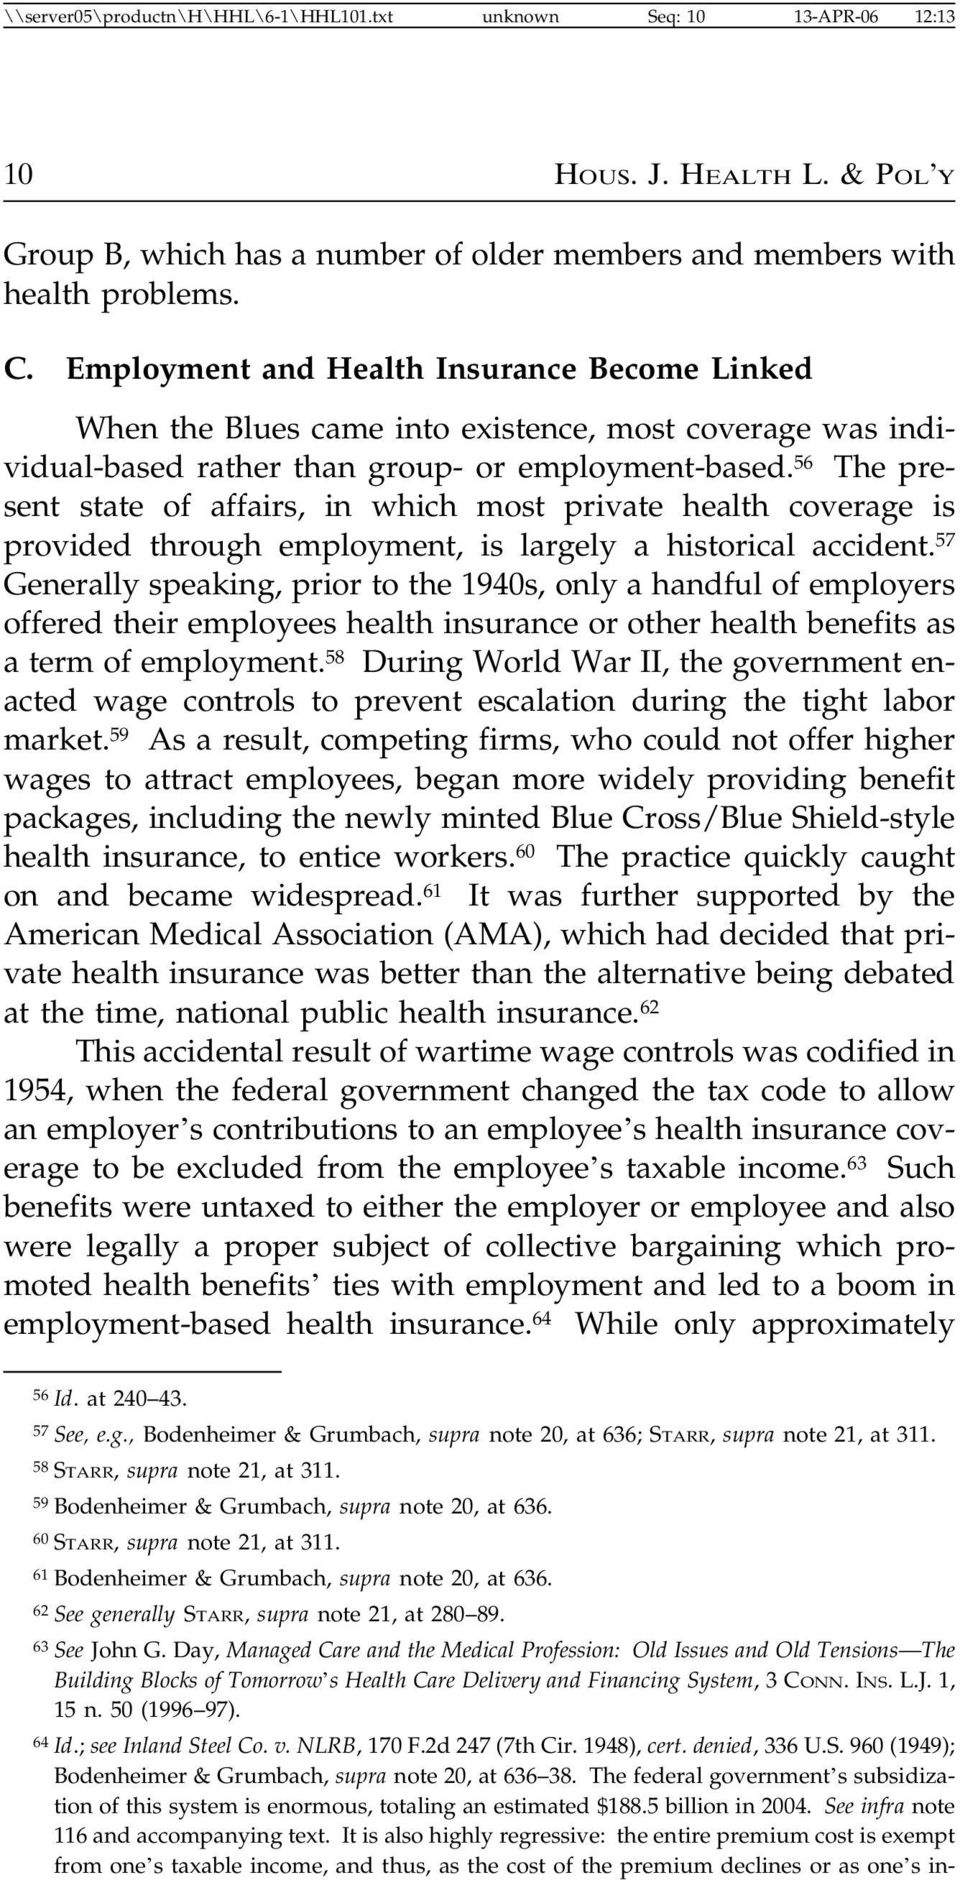 56 The present state of affairs, in which most private health coverage is provided through employment, is largely a historical accident.